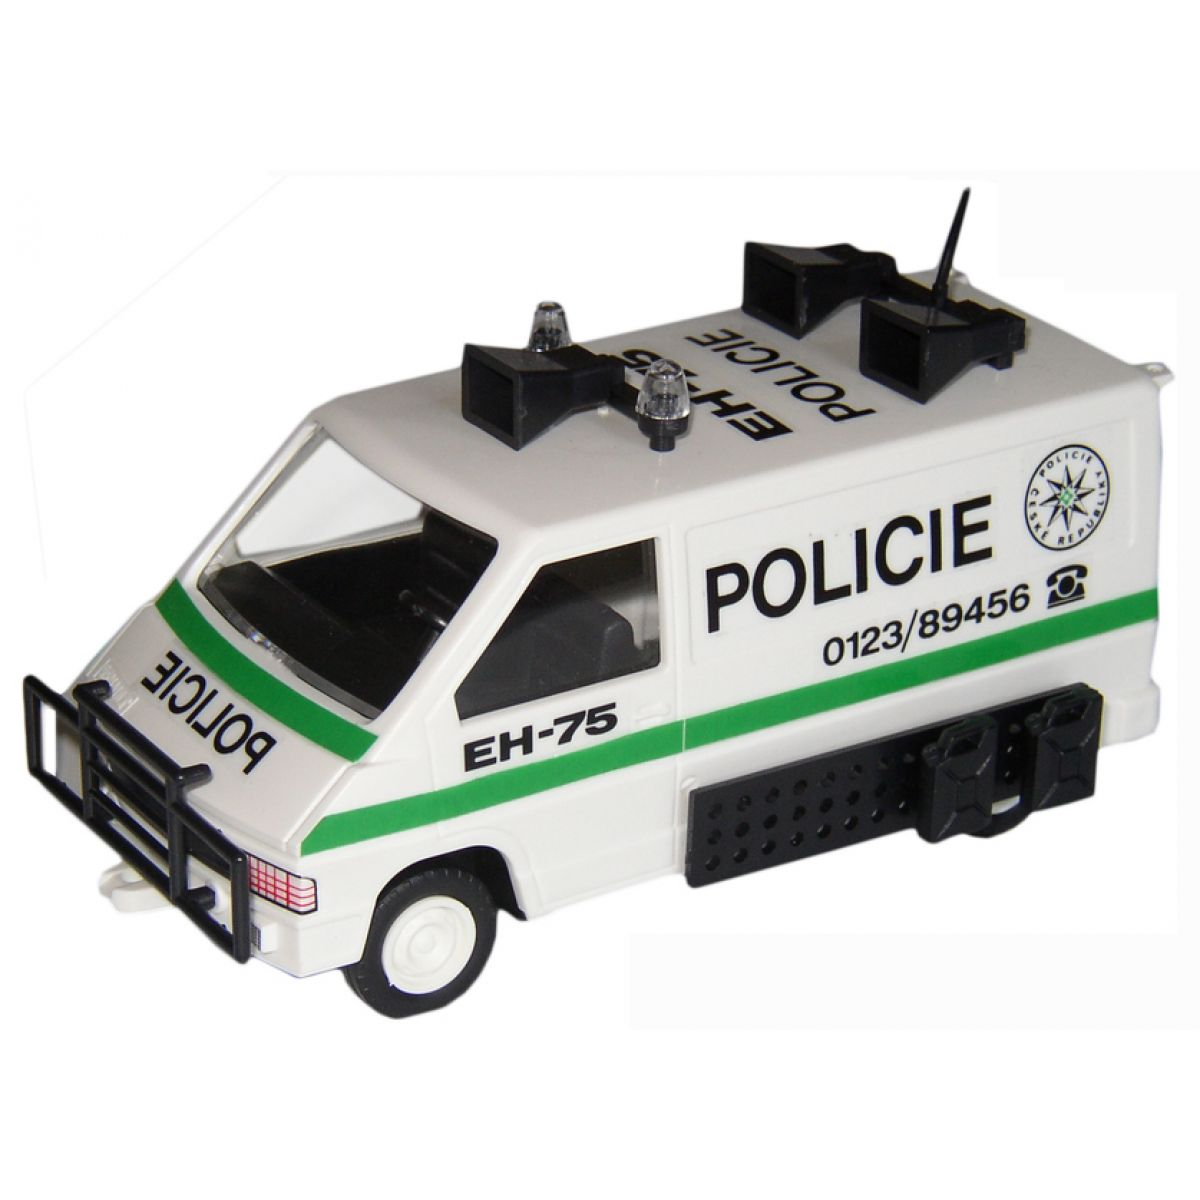 Monti System 27 Policie 1:35